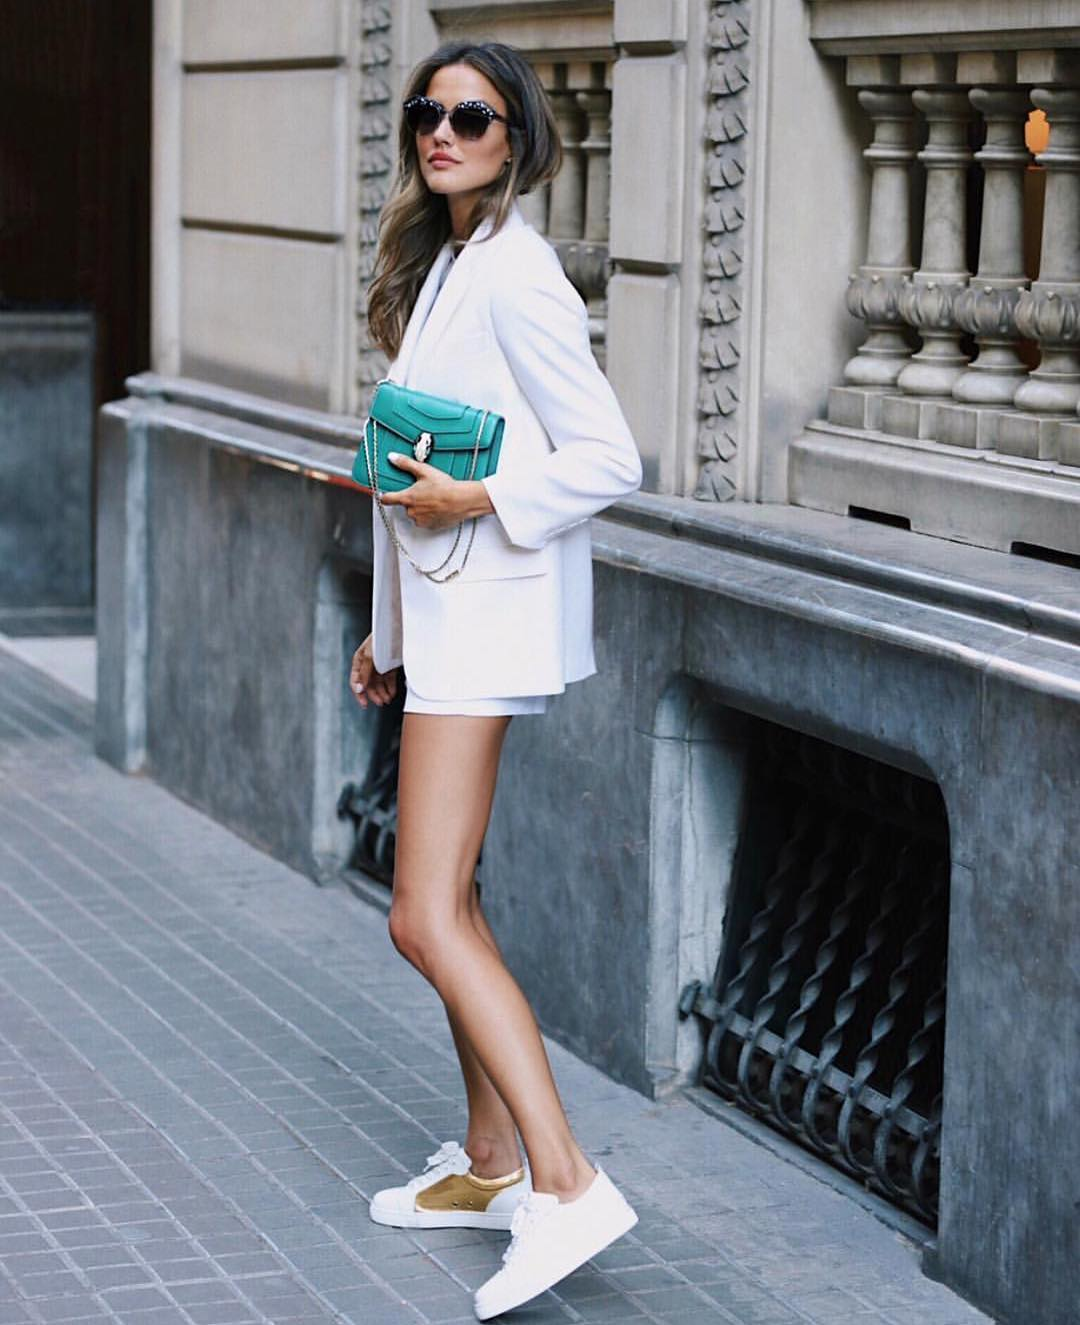 All White Look For Summer: Blazer, Shorts And Sneakers 2020